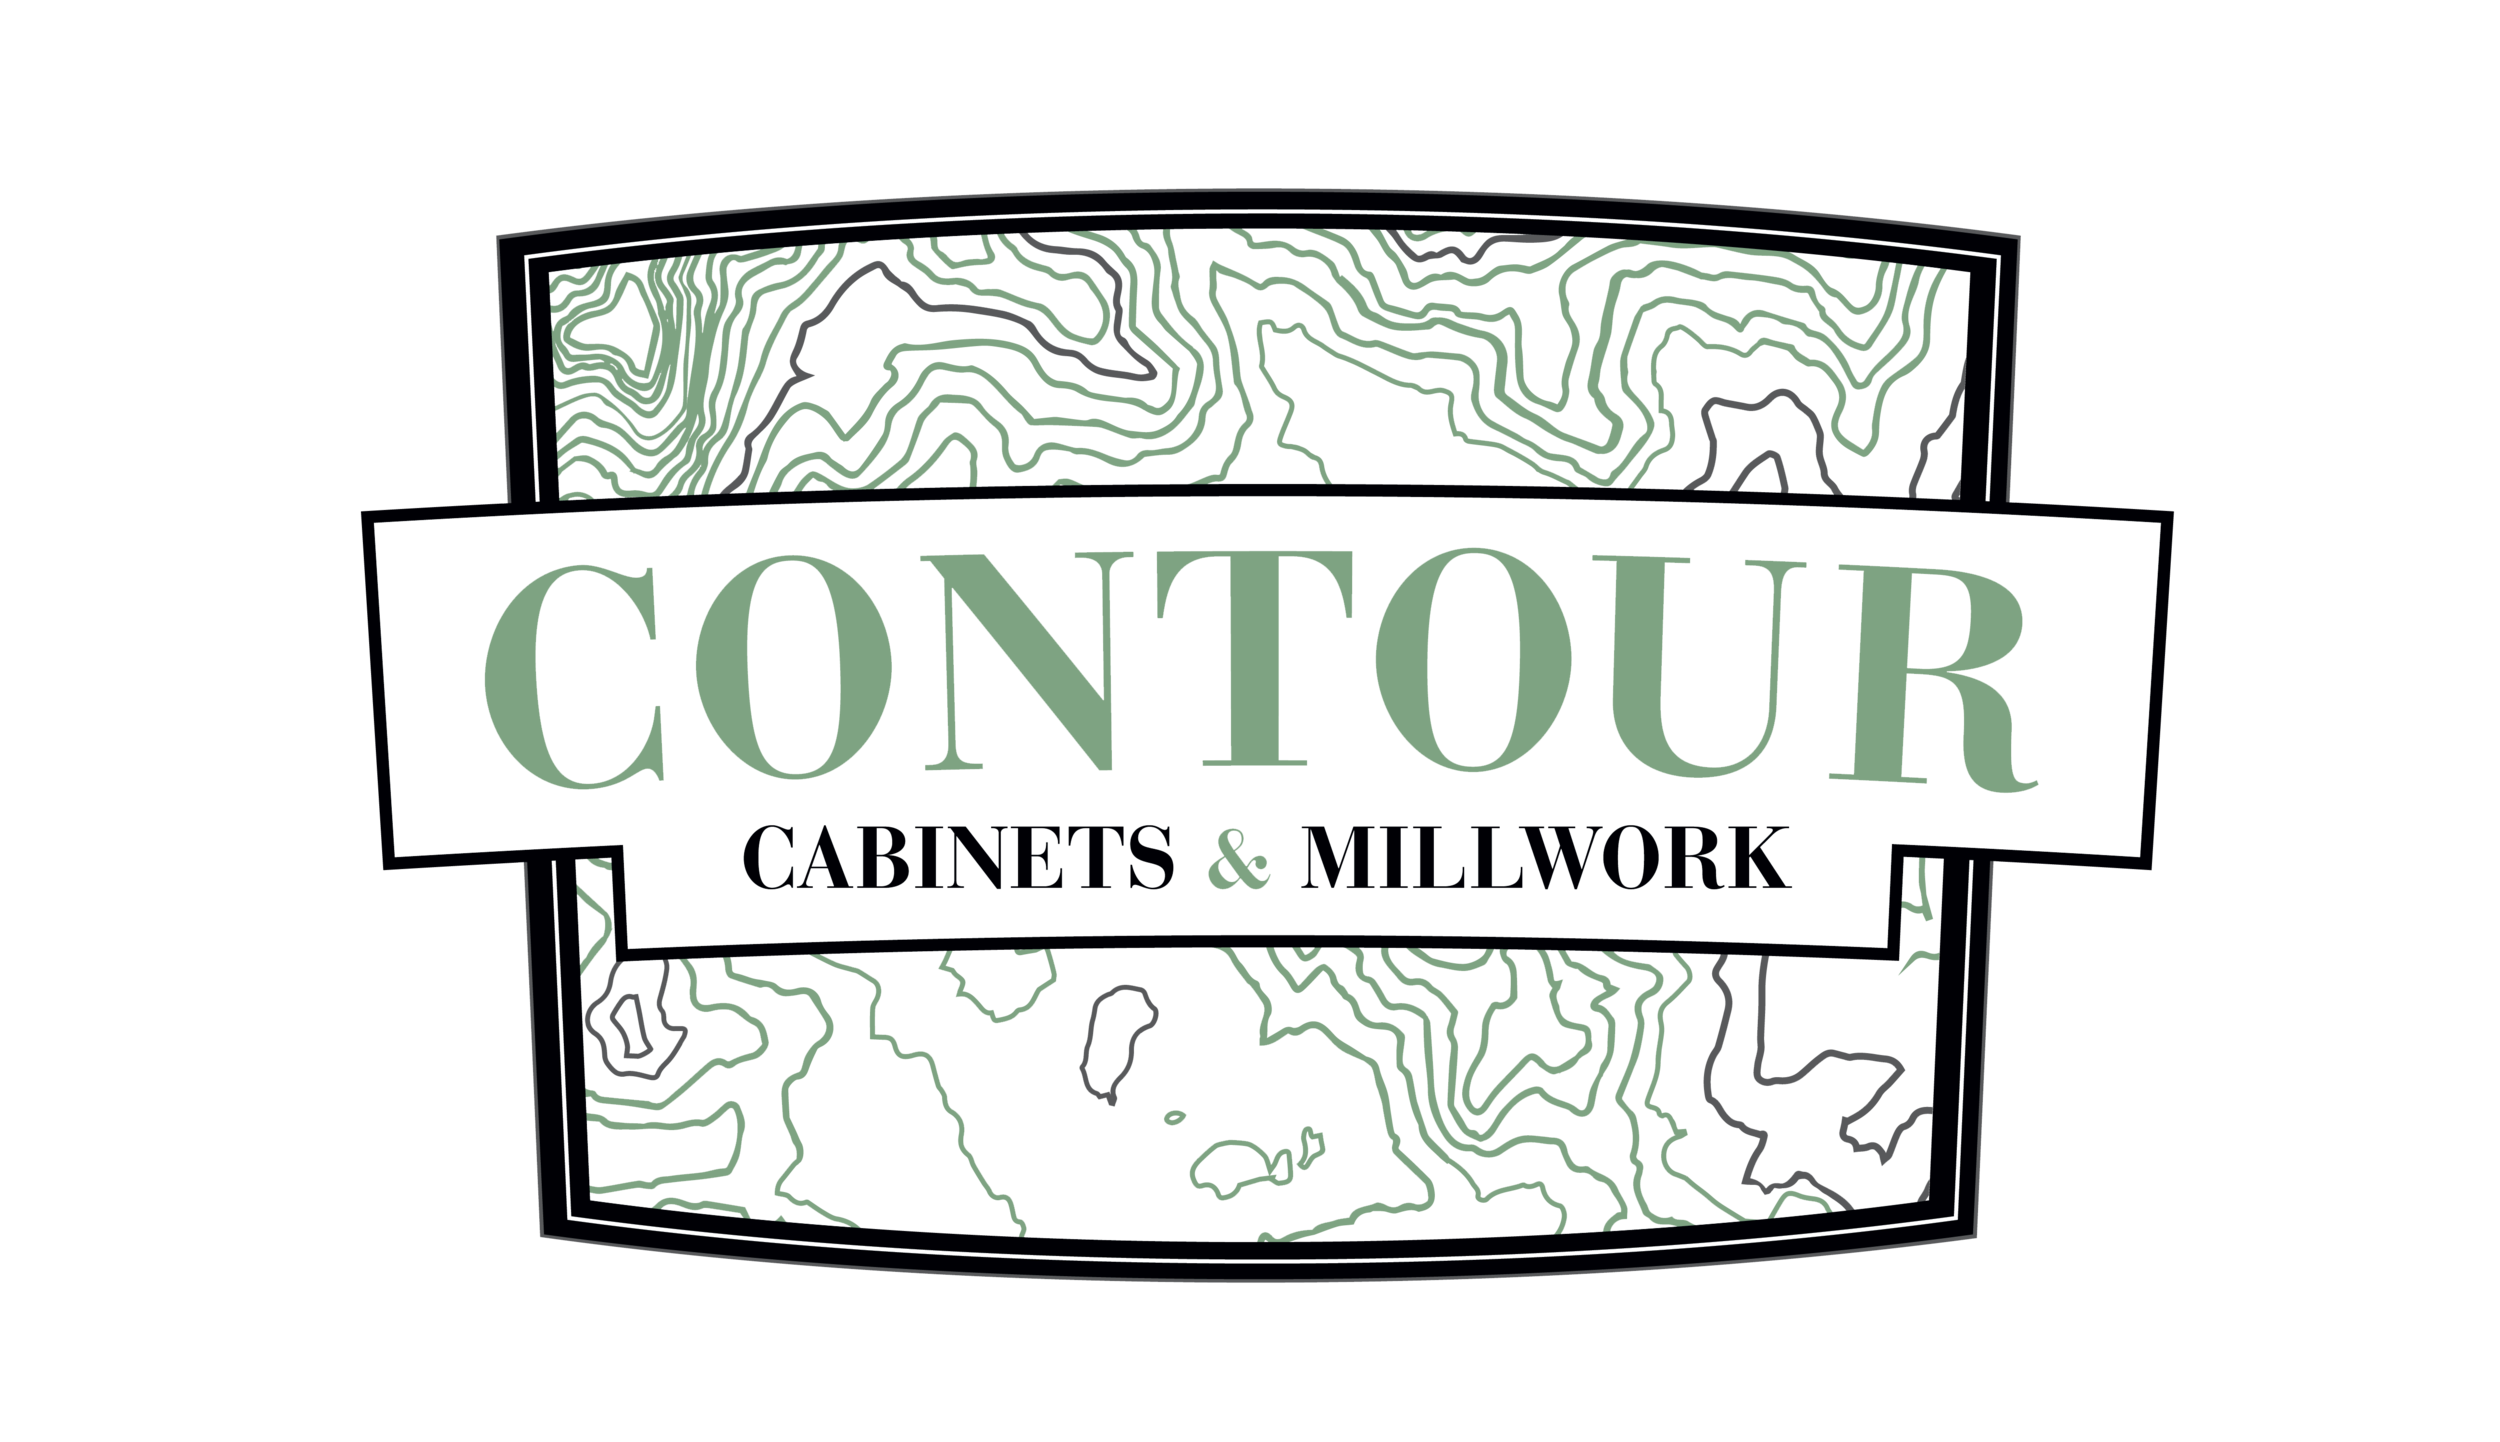 Contour Cabinets & Millwork - luke@contourcabinets.ca - 306.552.8200By Appointment: 320 Hodsman Rd. Regina, SK S4N 5X4